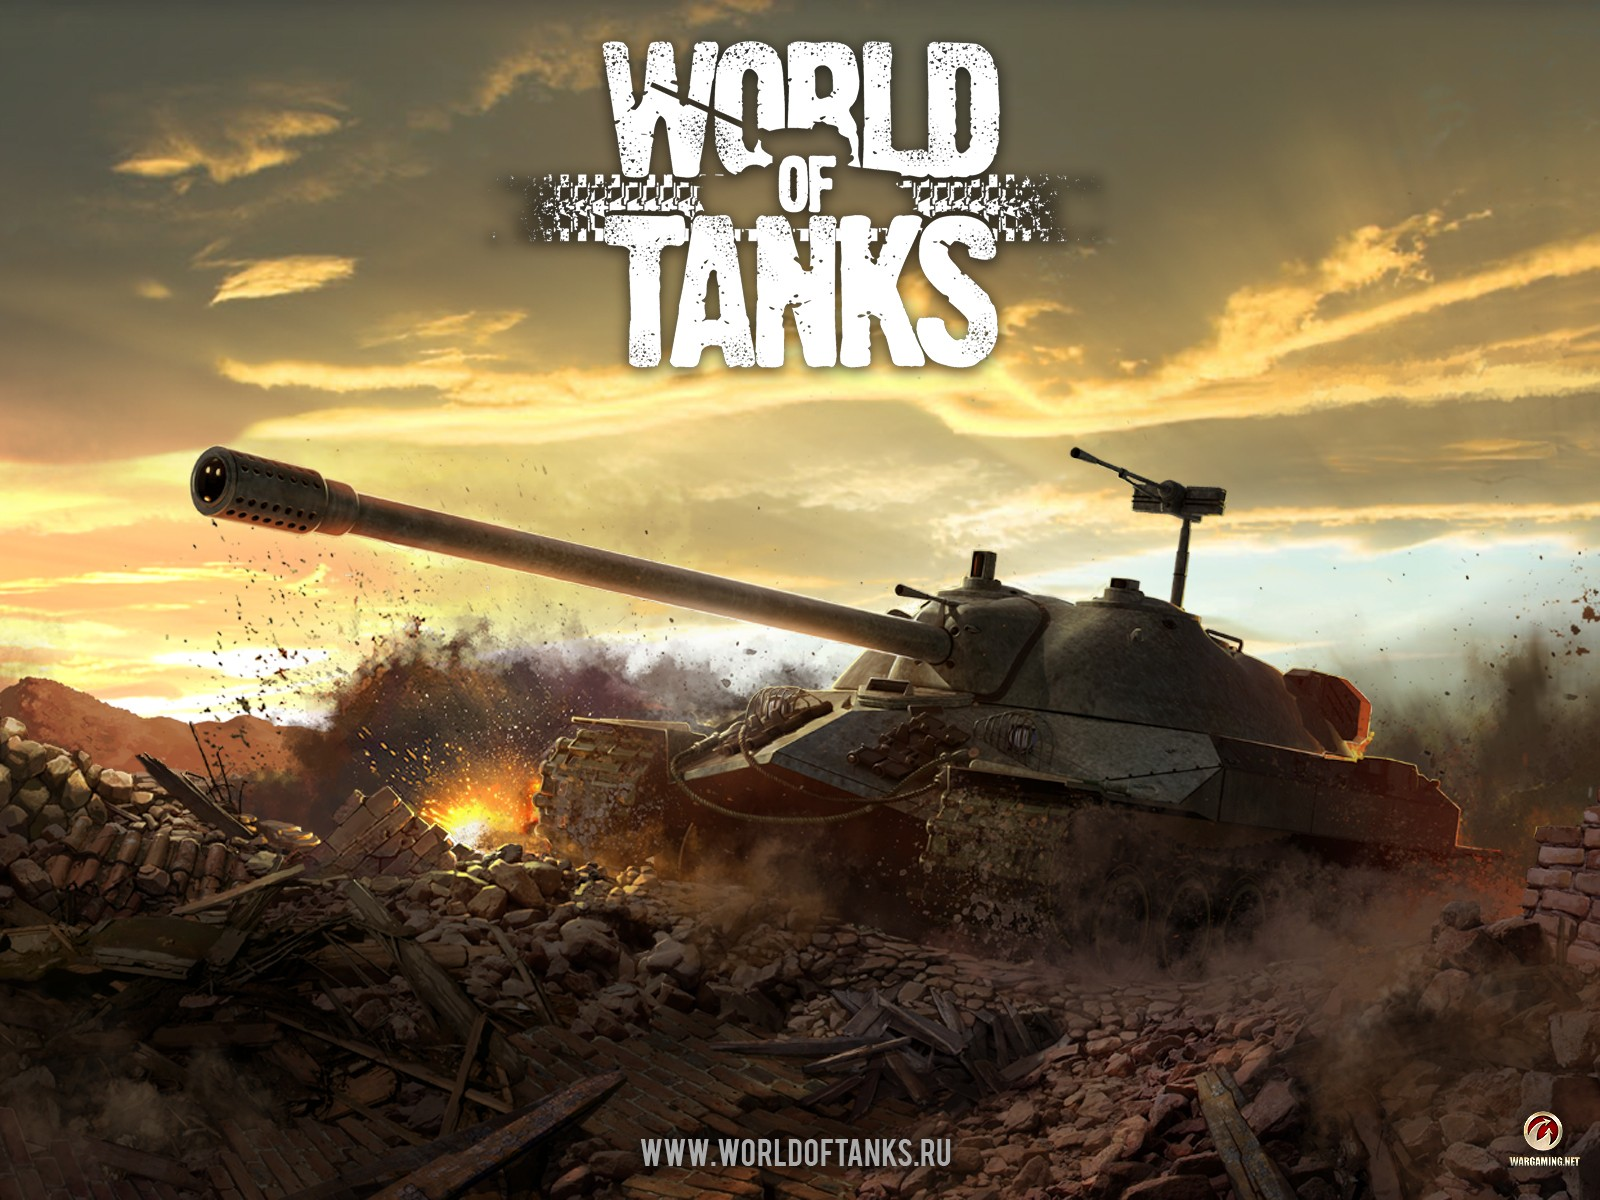 World of tanks обои фото картинки на